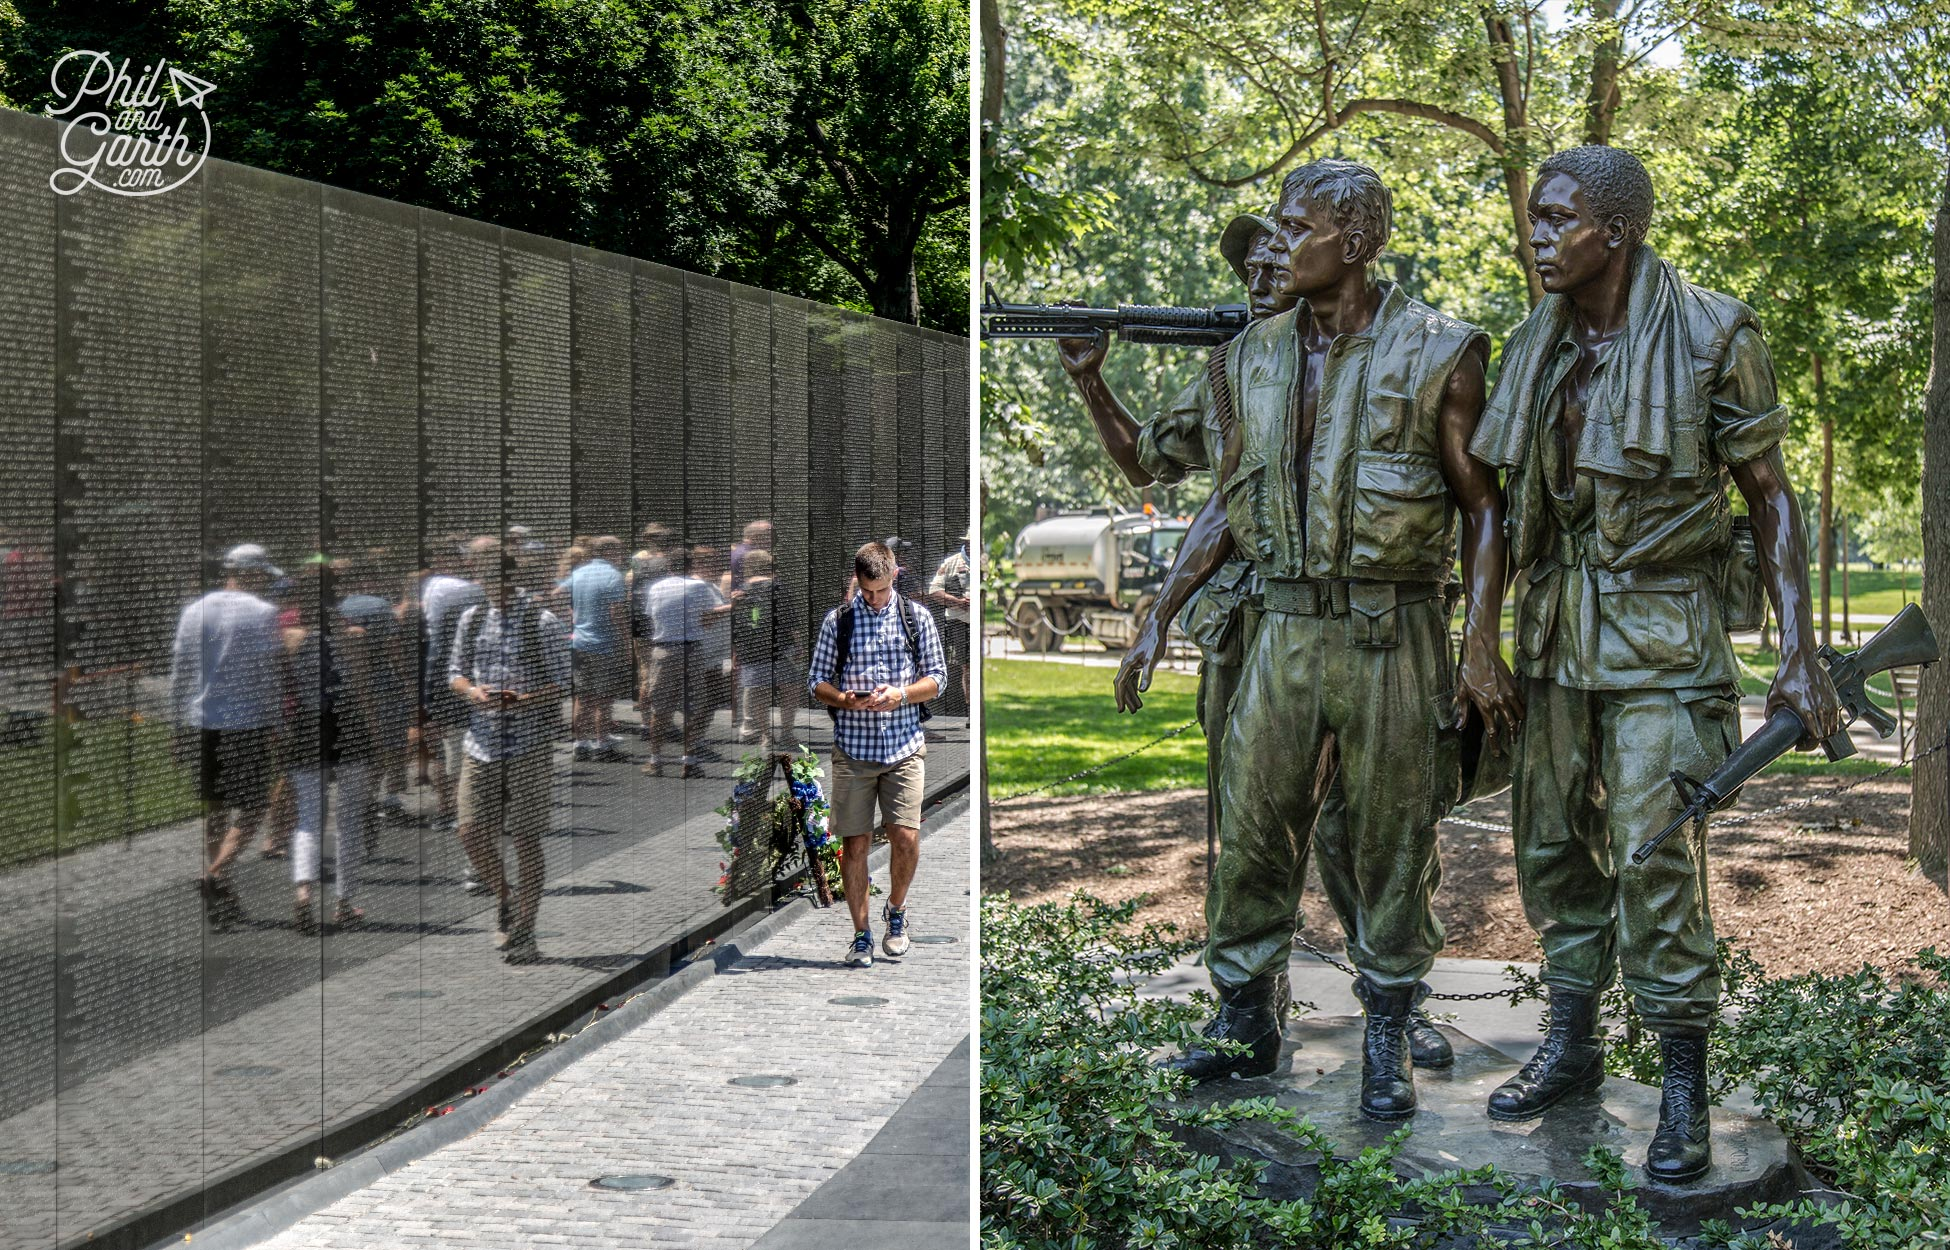 The Three Soldiers (also known as The Three Servicemen) represents diversity in the US military